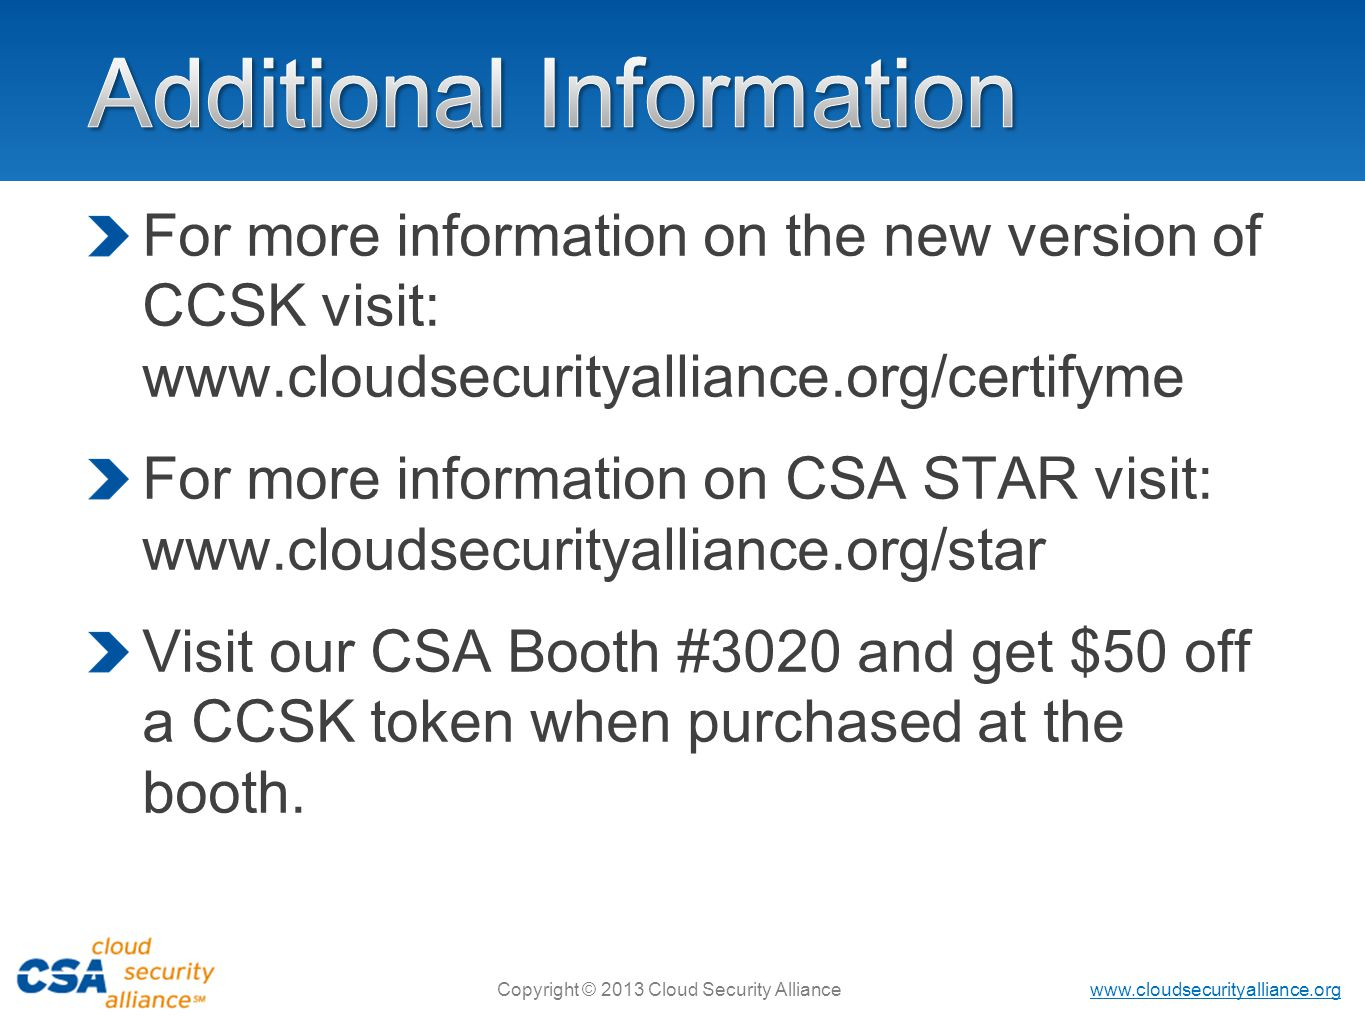 www.cloudsecurityalliance.org Copyright © 2013 Cloud Security Alliance For more information on the new version of CCSK visit: www.cloudsecurityalliance.org/certifyme For more information on CSA STAR visit: www.cloudsecurityalliance.org/star Visit our CSA Booth #3020 and get $50 off a CCSK token when purchased at the booth.